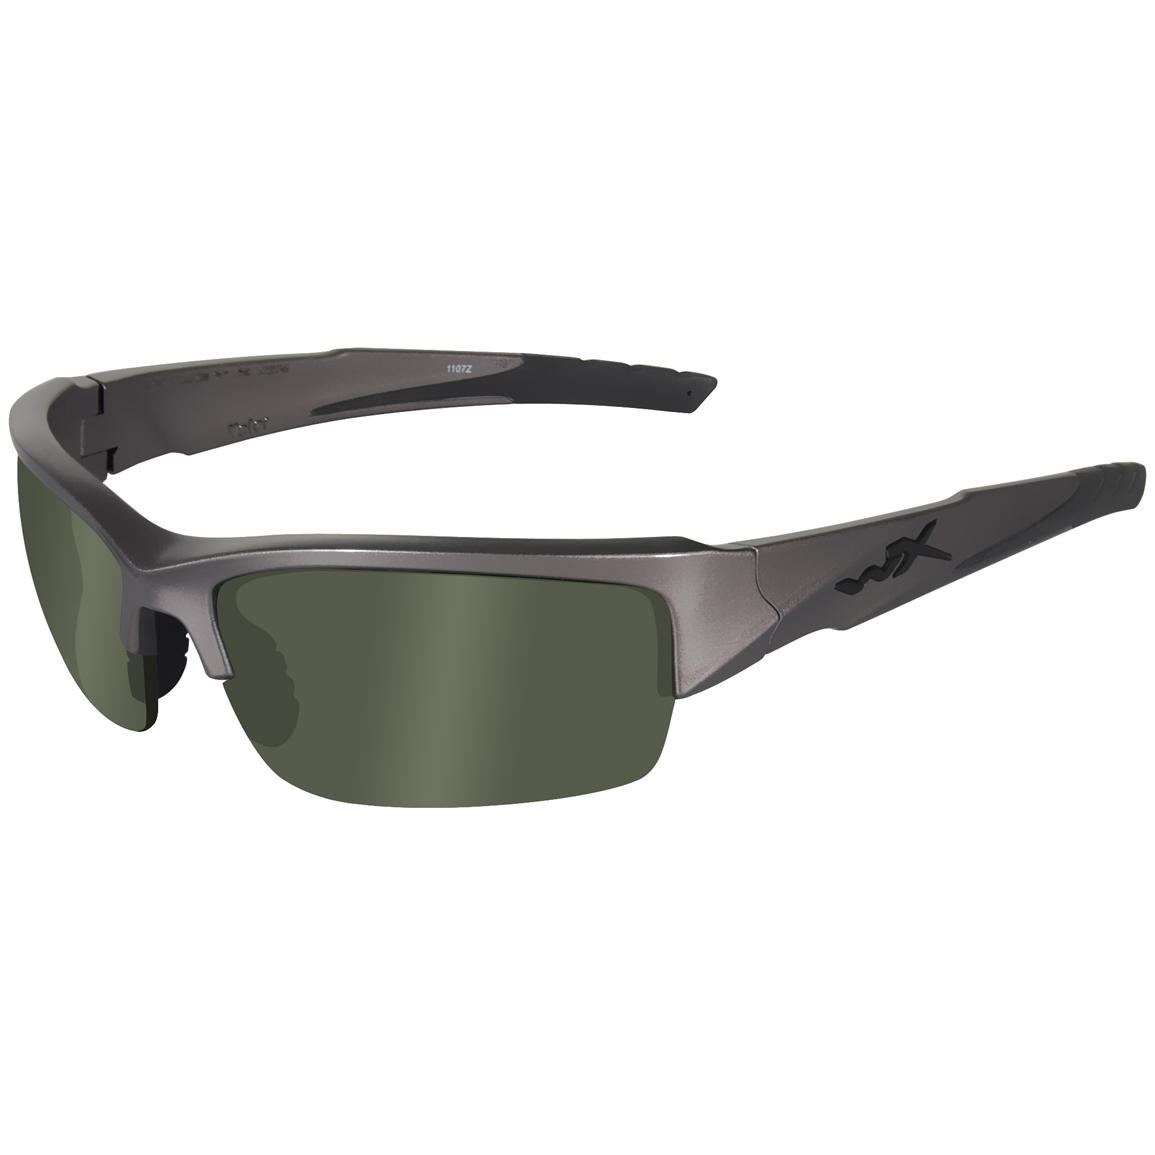 Wiley X® Valor Changeables Polarized Sunglasses, Green